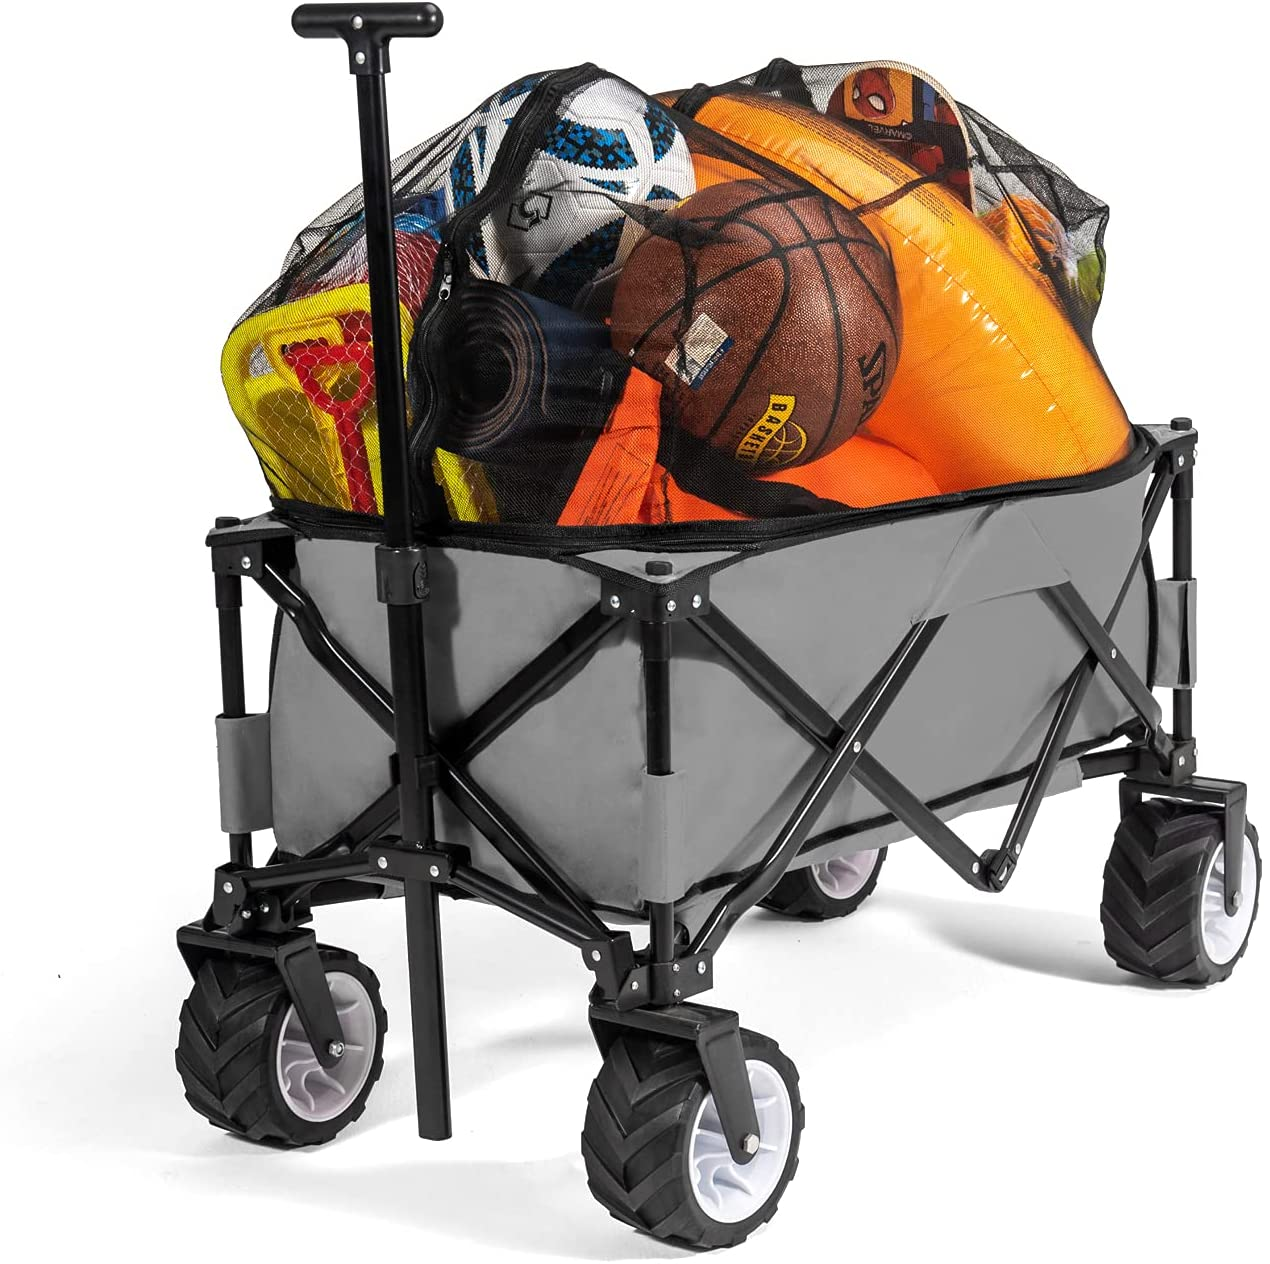 PA Max 73% OFF Outdoor Utility Foldable Wagon Luggage Shopping and Portable sold out